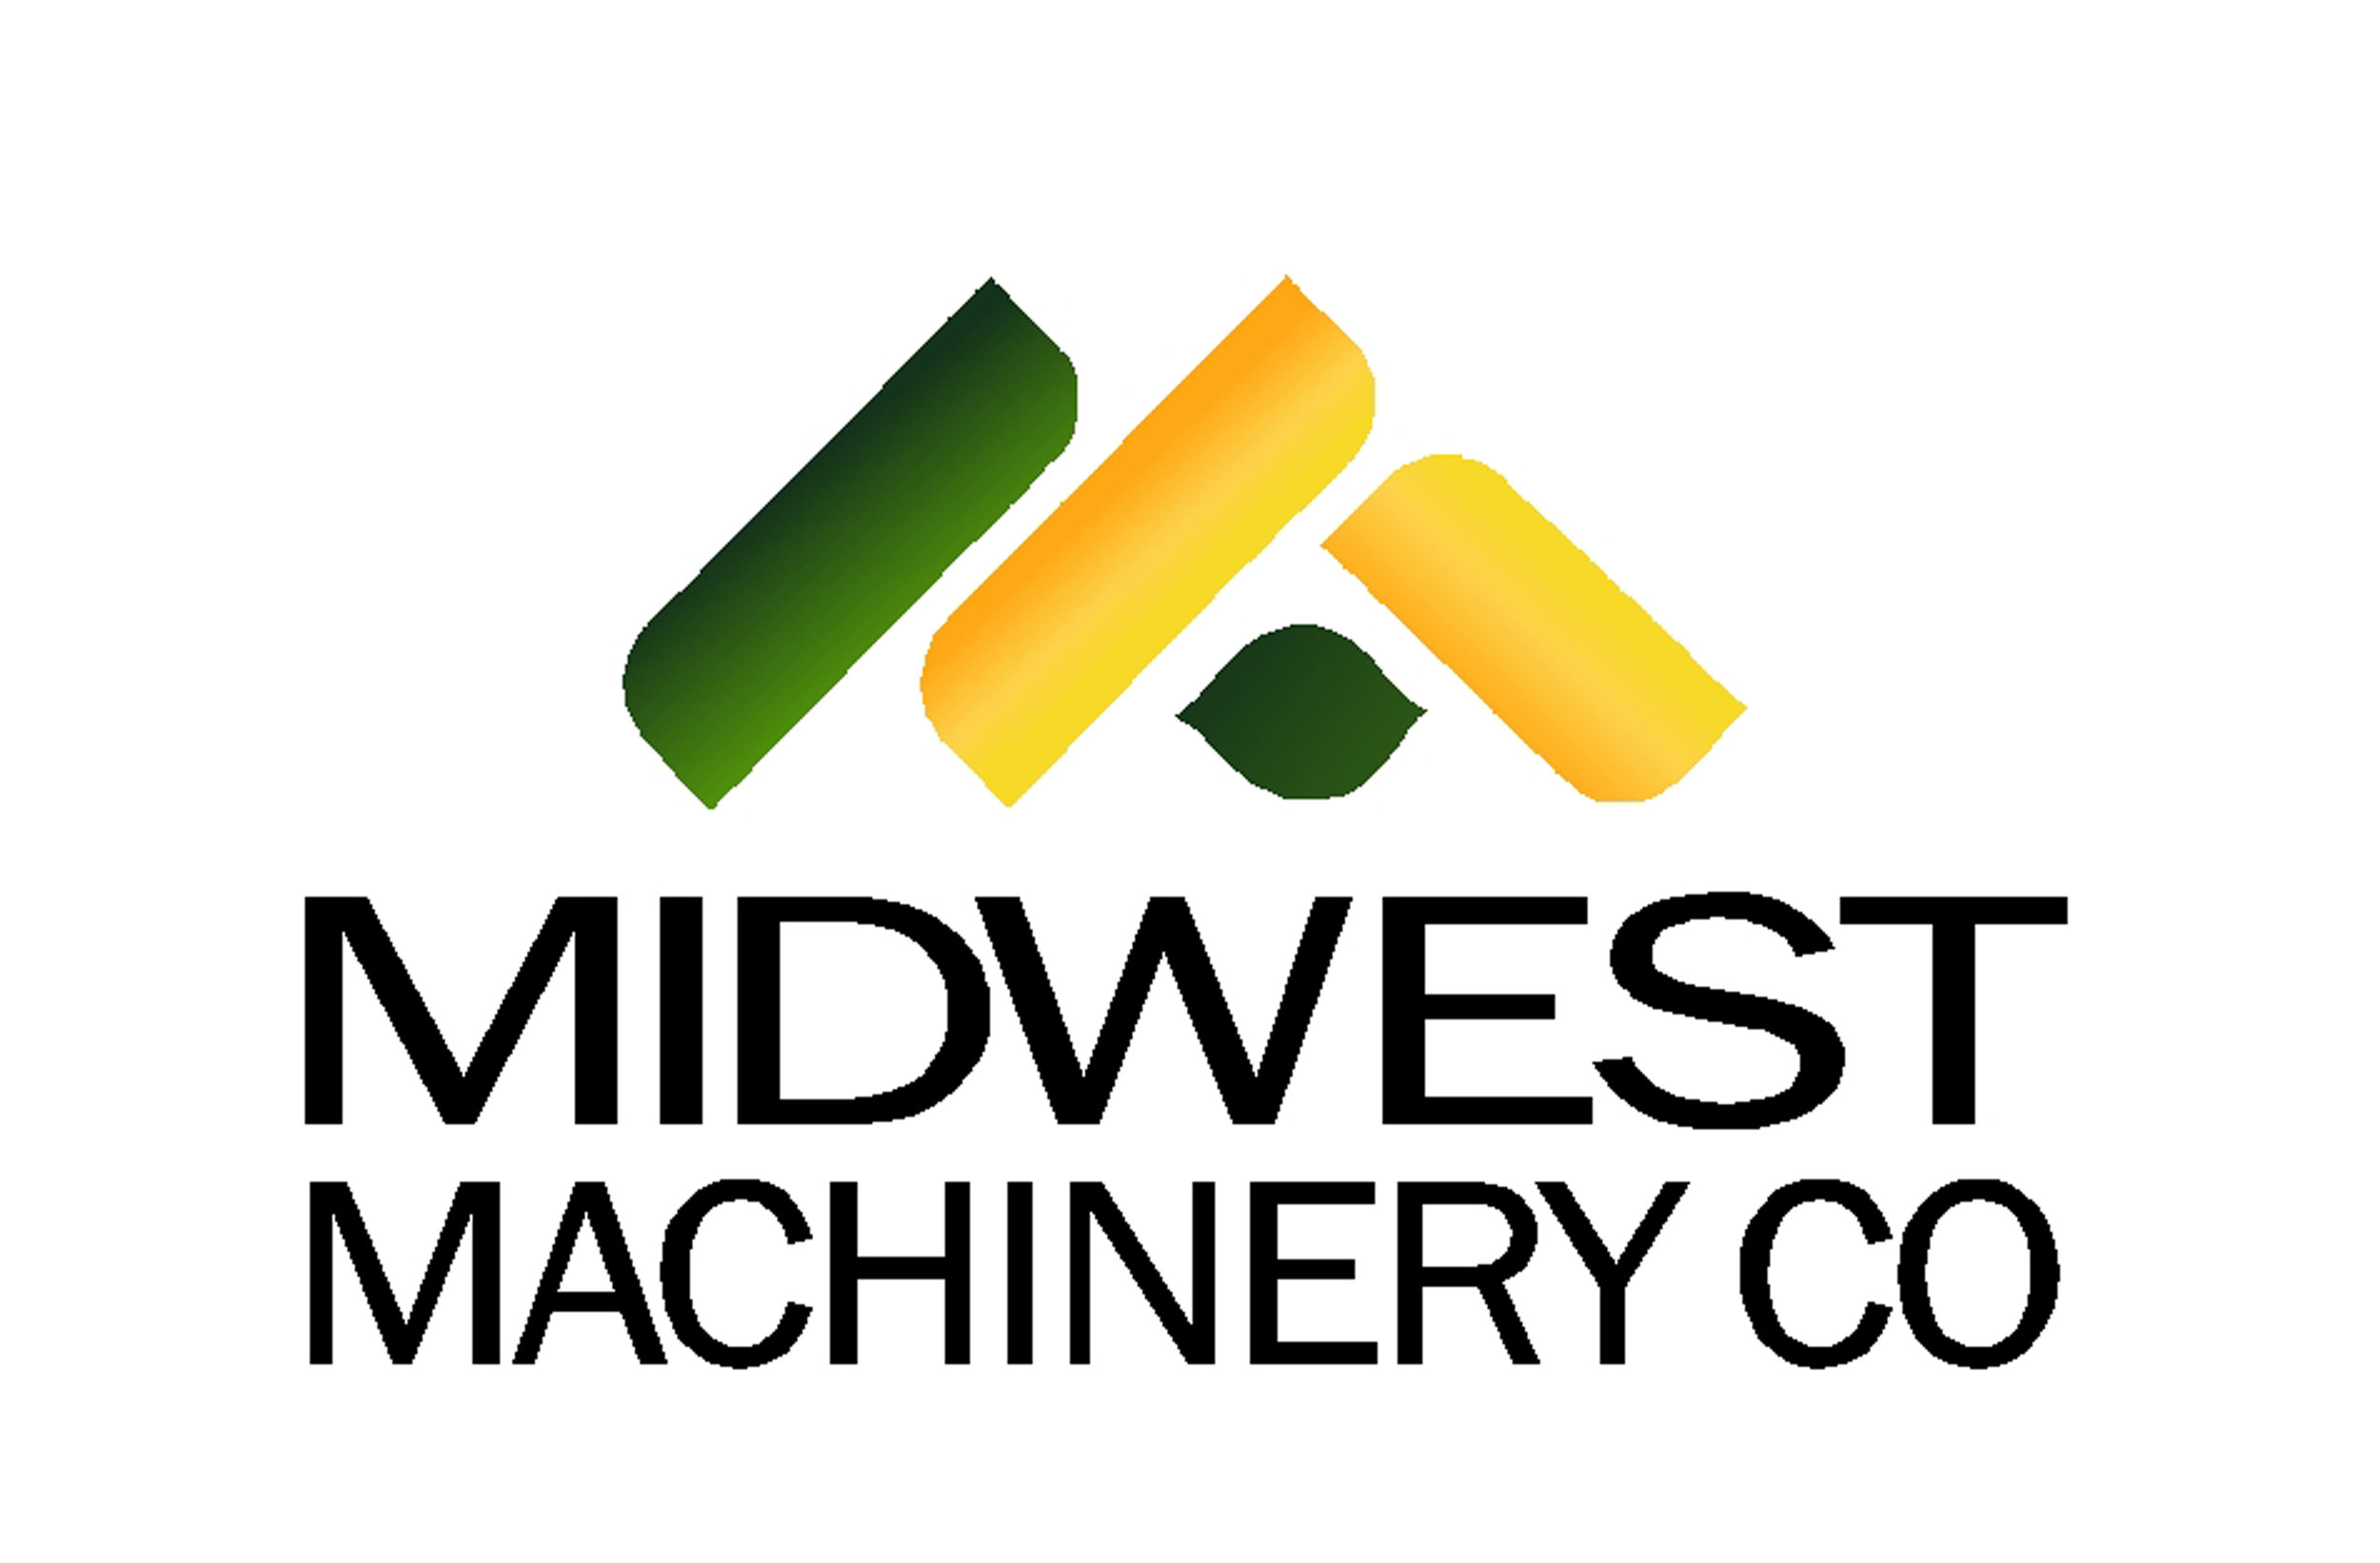 midwest machinery co.jpg